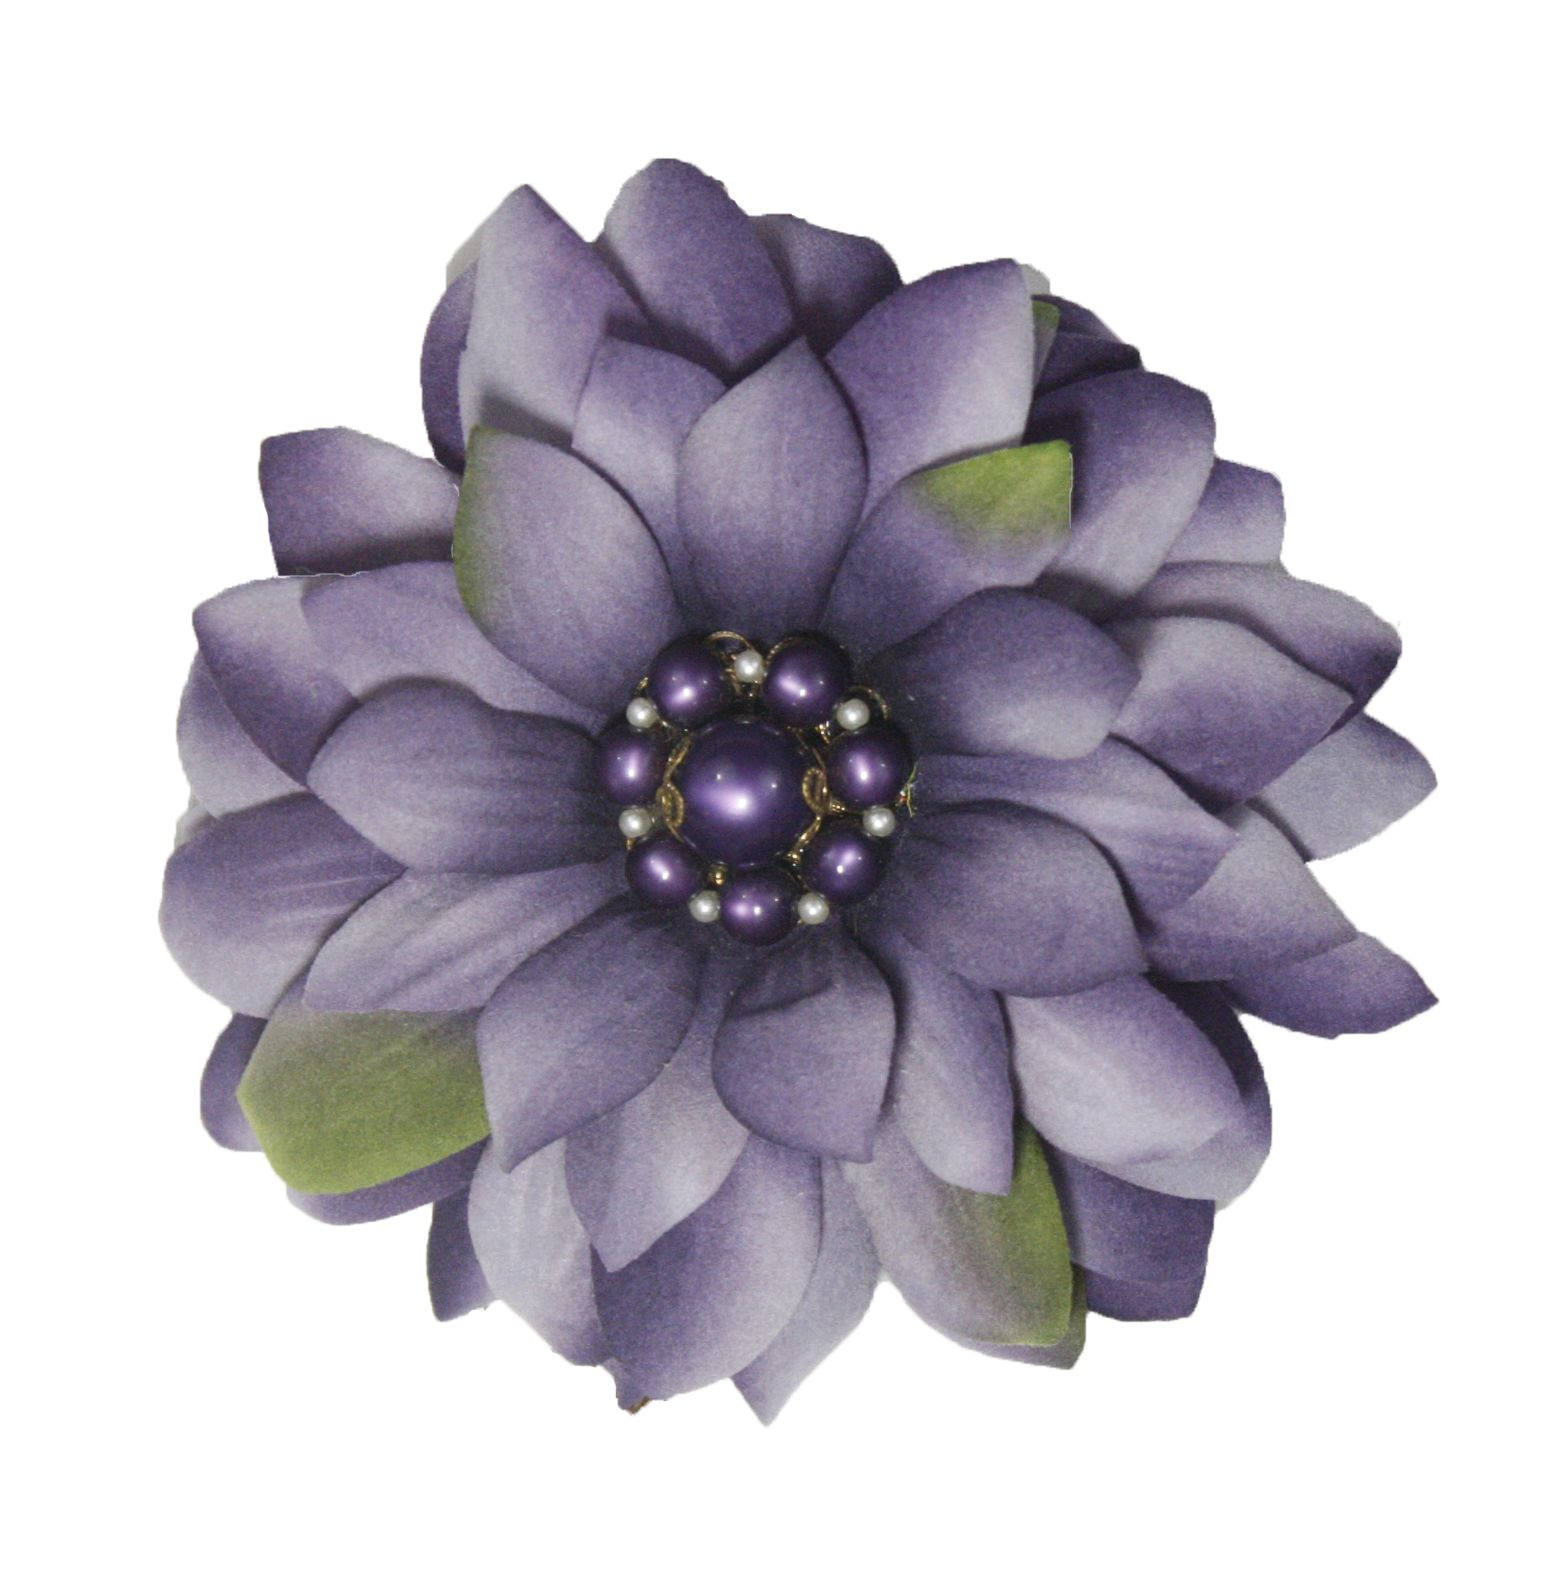 Lavender Silk Flower Pin With Vintage Brooch Center Has A Clip Too